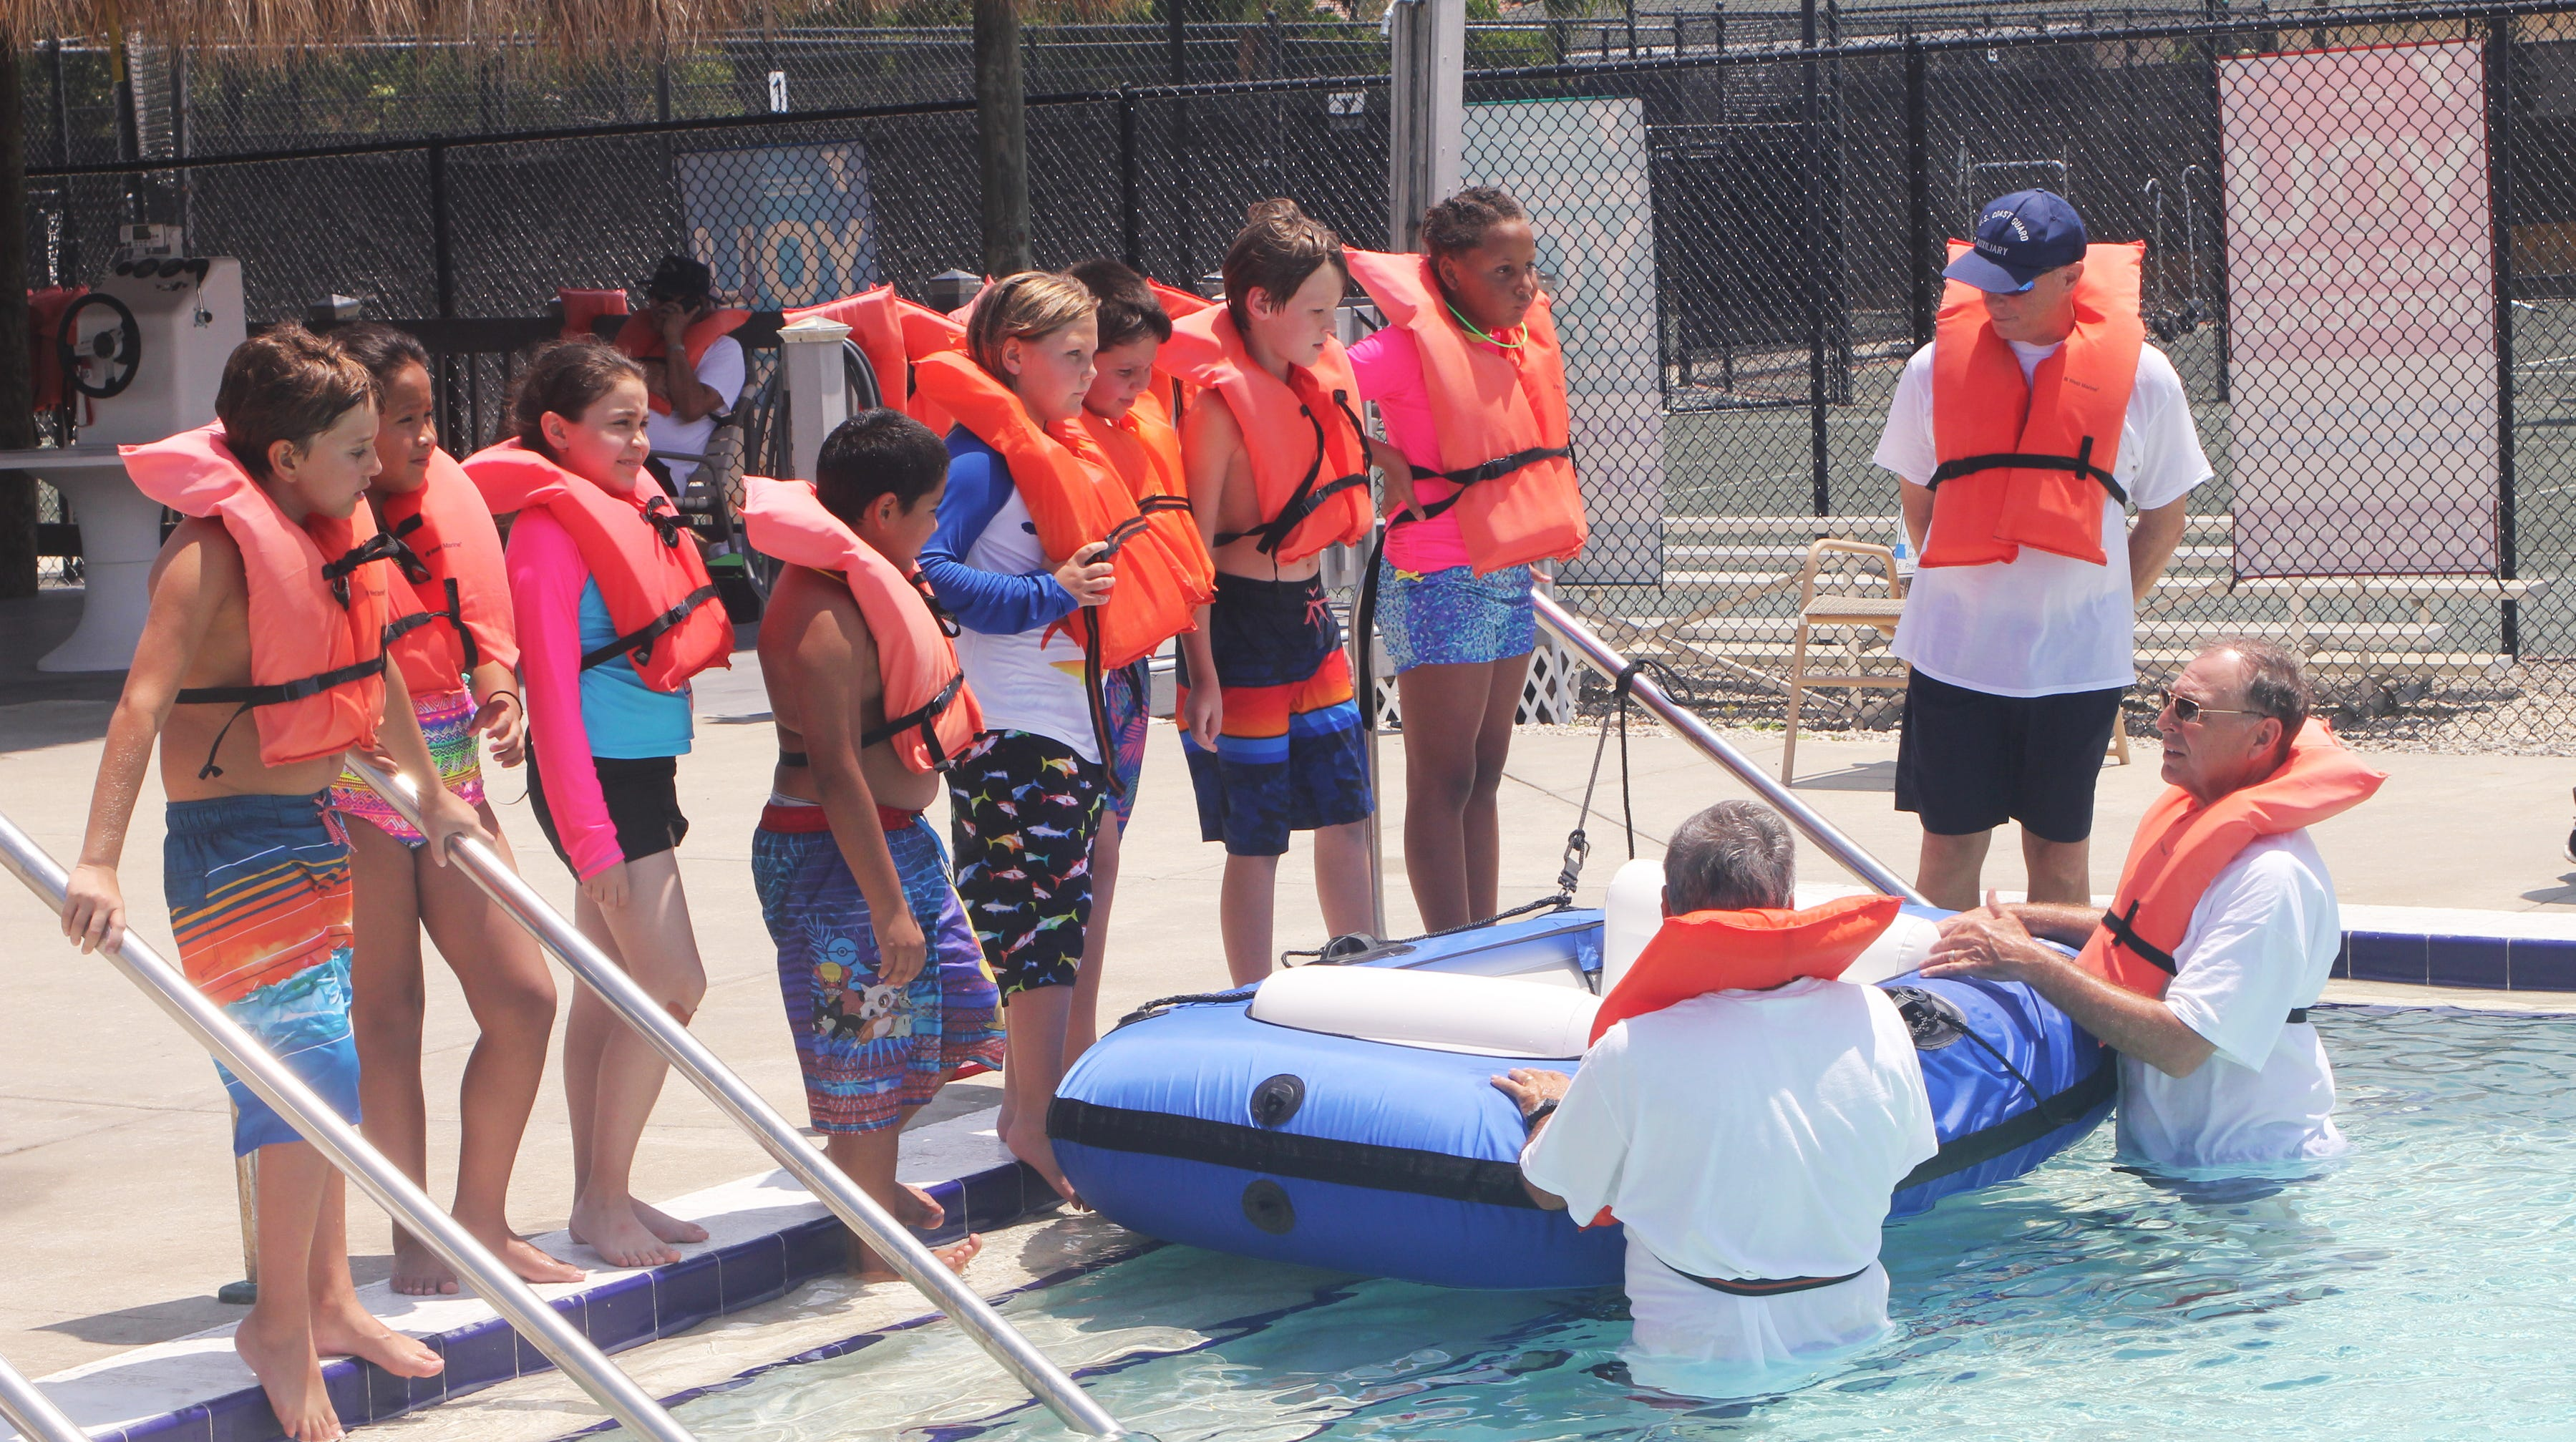 Members of the Marco Island Coast Guard Auxiliary Flotilla 9-5 teach basic boat safety to one of the revolving groups.